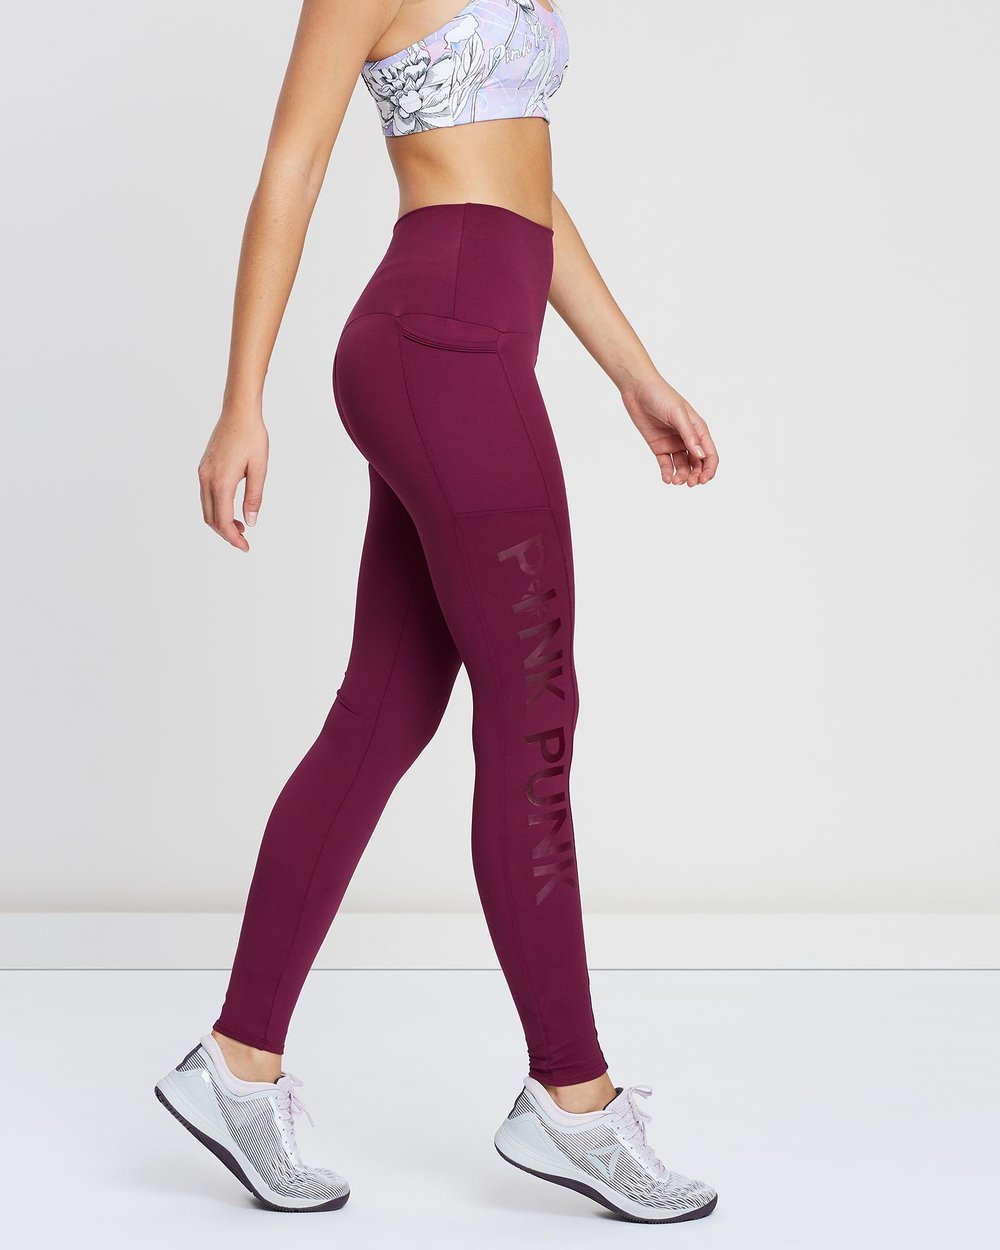 2c204aa0bb9ce Squat Proof Compression Full Length Pocket Tights - Berry by Pink Punk  Active Online | THE ICONIC | Australia